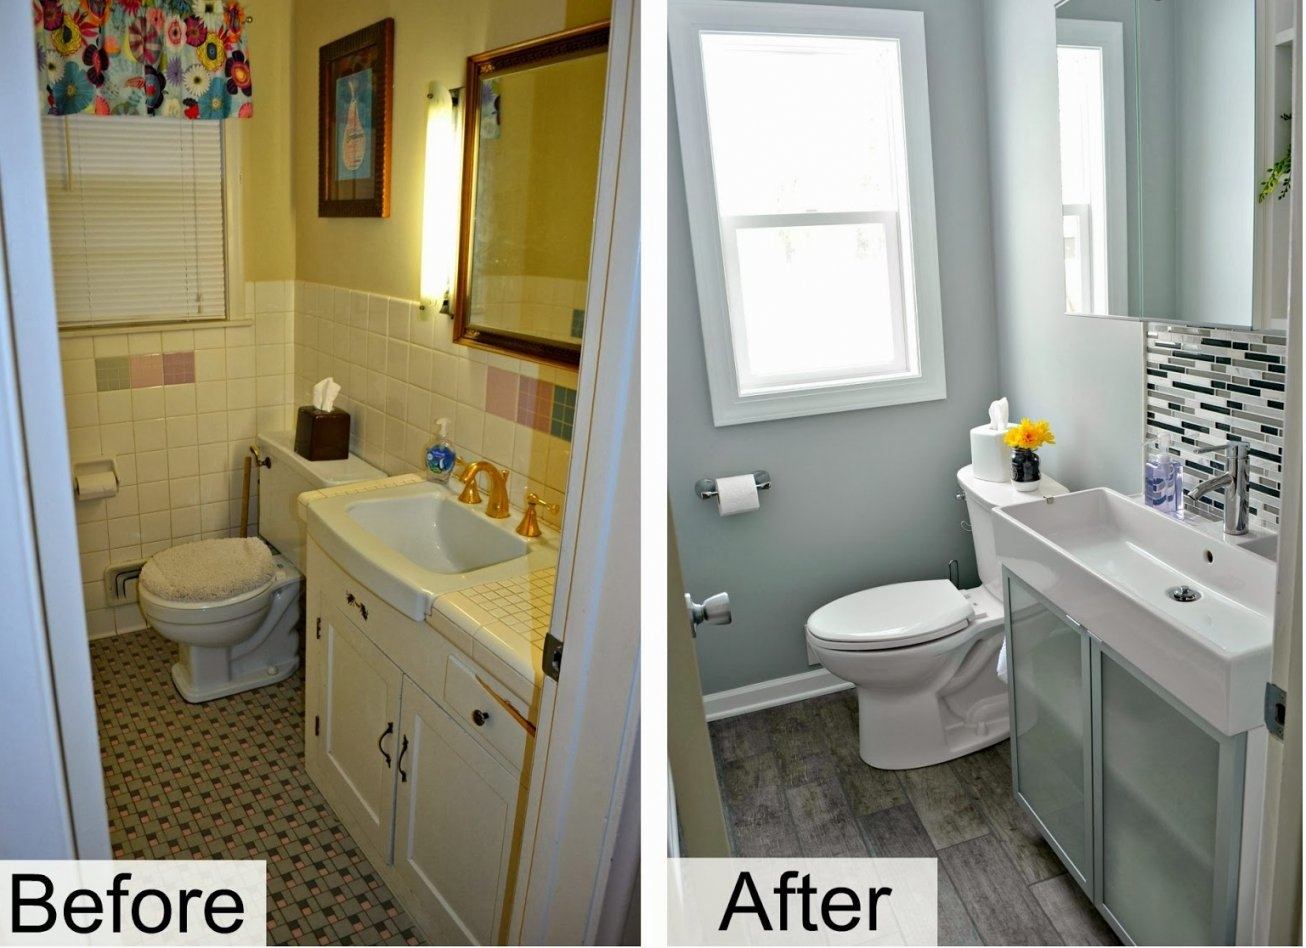 Modern Bathroom Remodeling On A Budget - New Generation Kitchen & Bath intended for Low Cost Bathroom Remodel